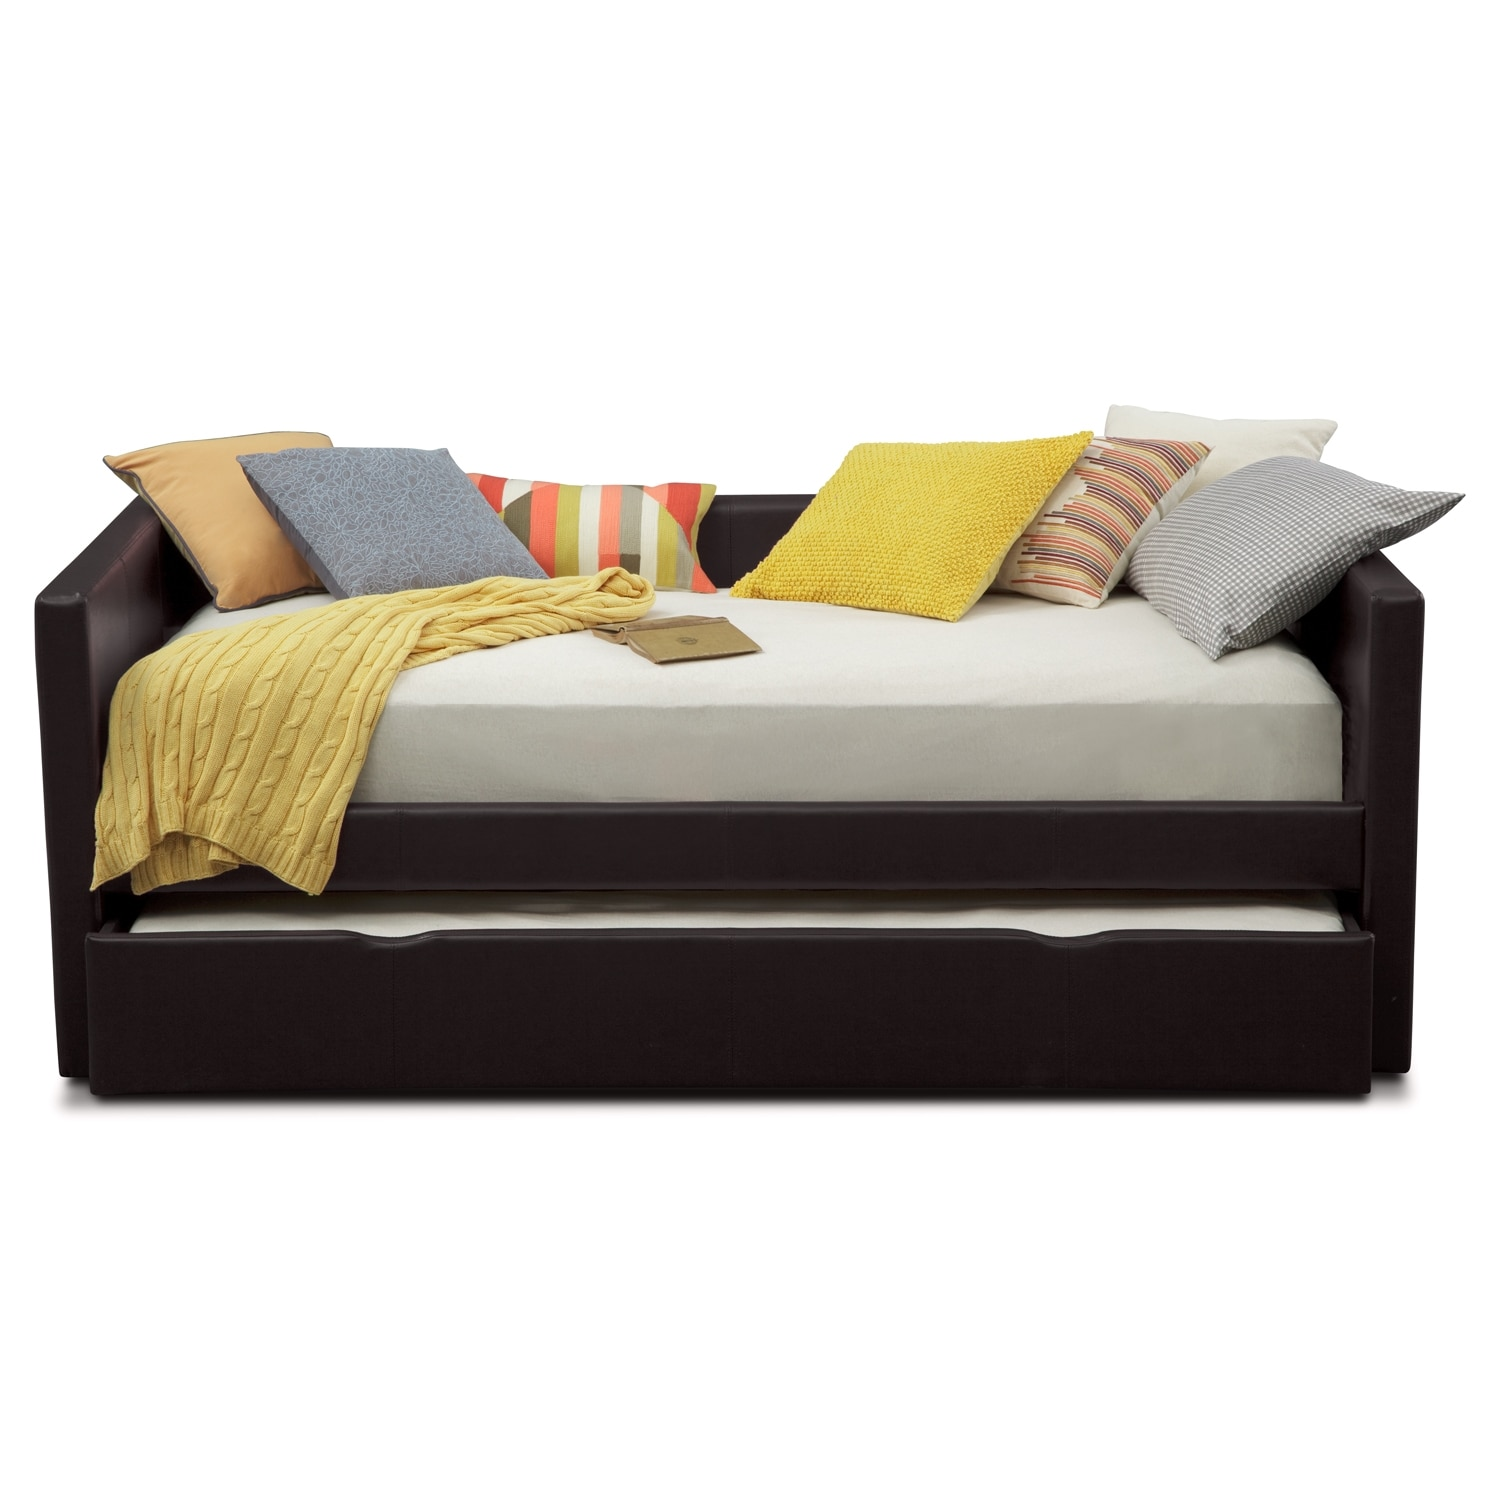 carey twin daybed with twin twin trundle brown value city furniture and mattresses. Black Bedroom Furniture Sets. Home Design Ideas